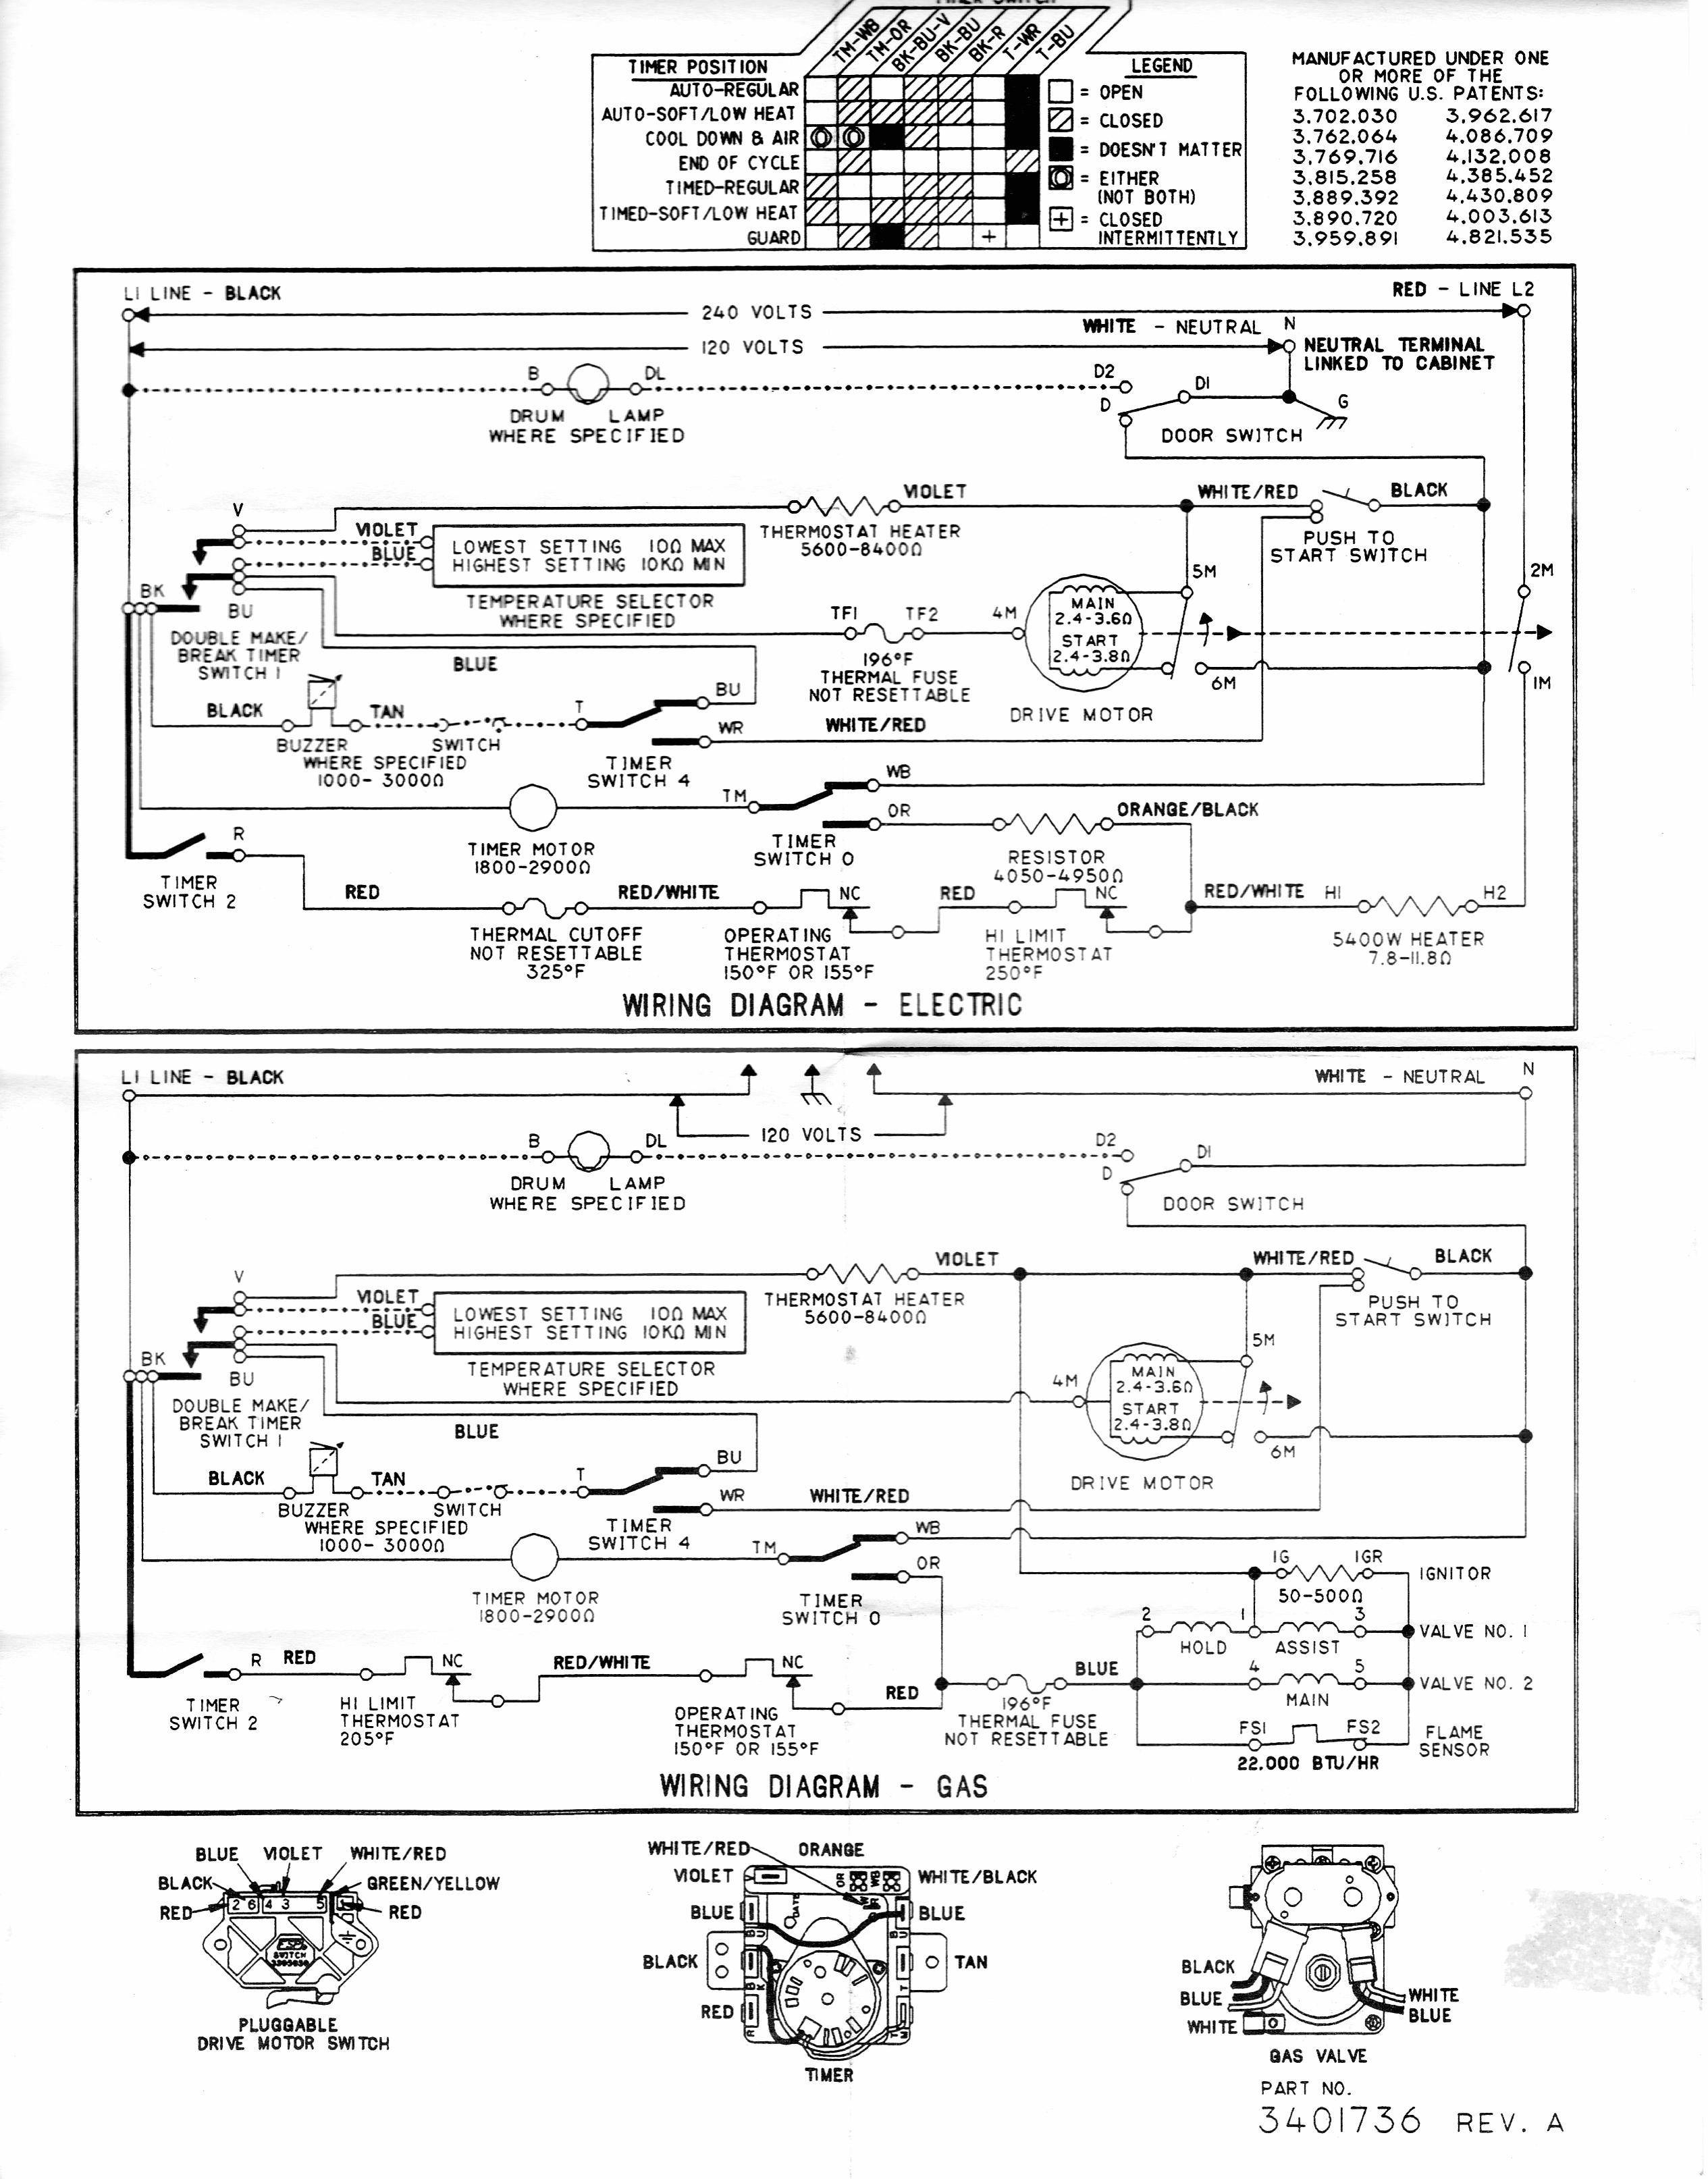 Amana Dryer Wire Diagram